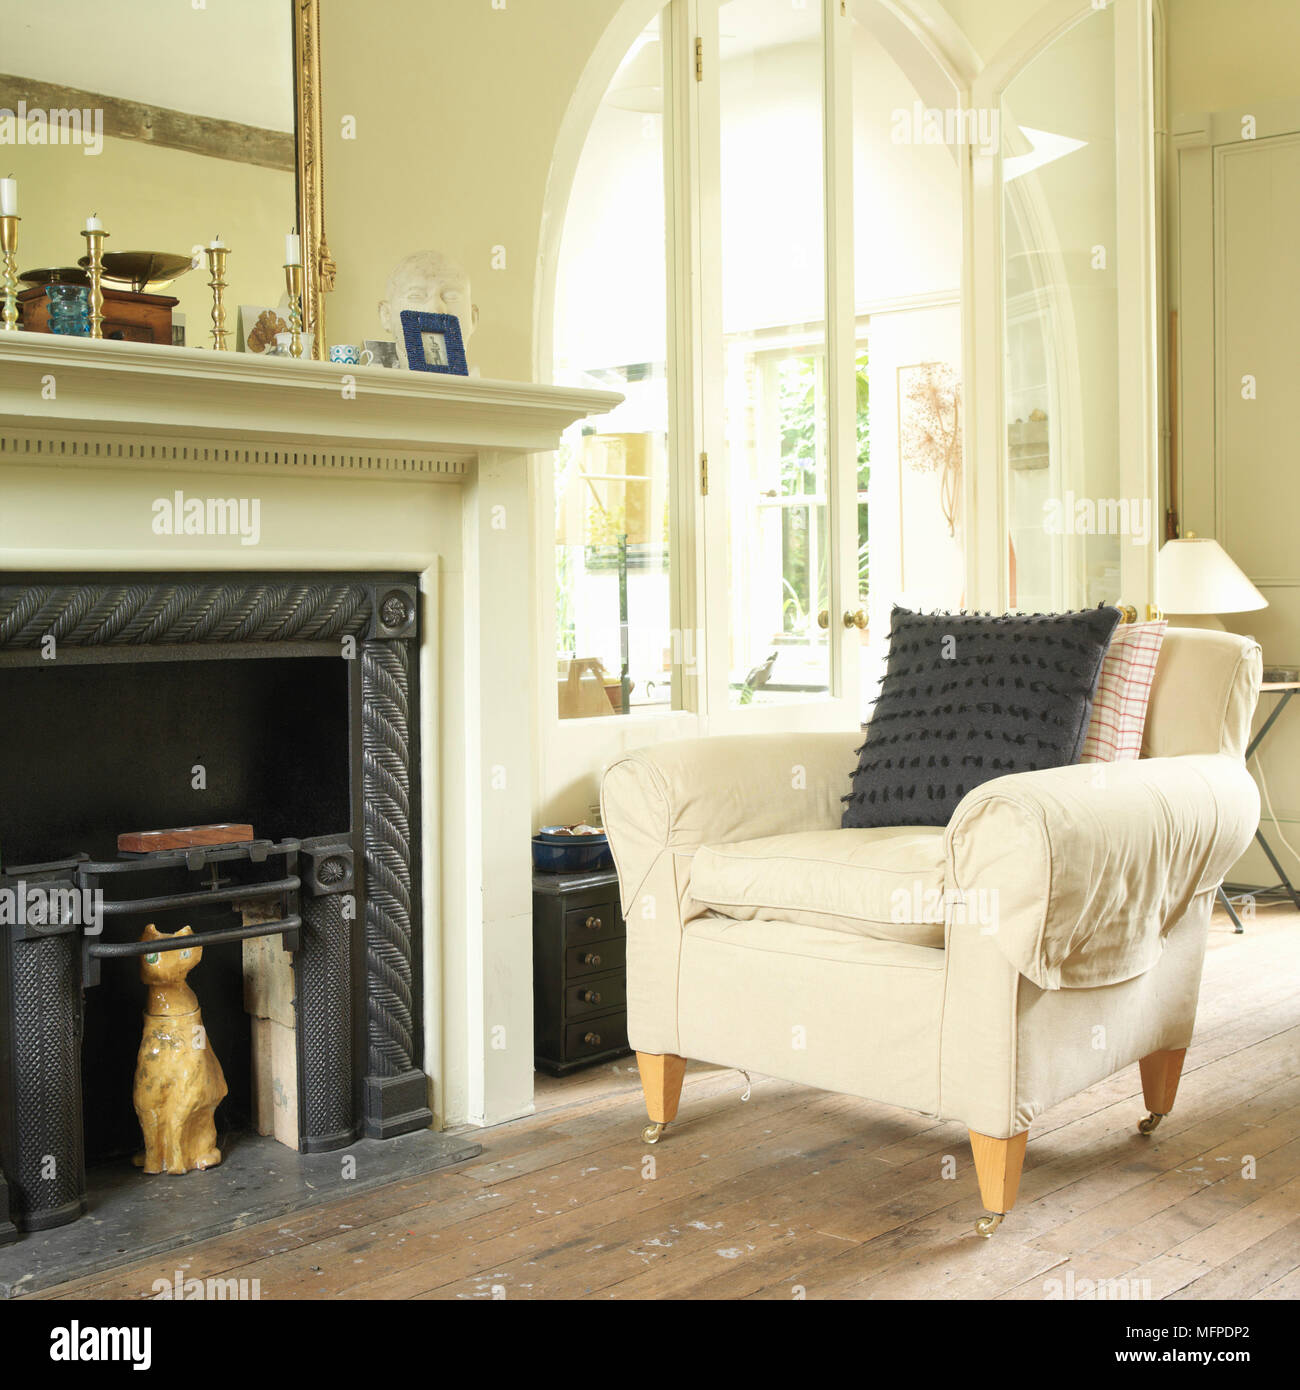 A traditional sitting room with an upholstered armchair next to a ...